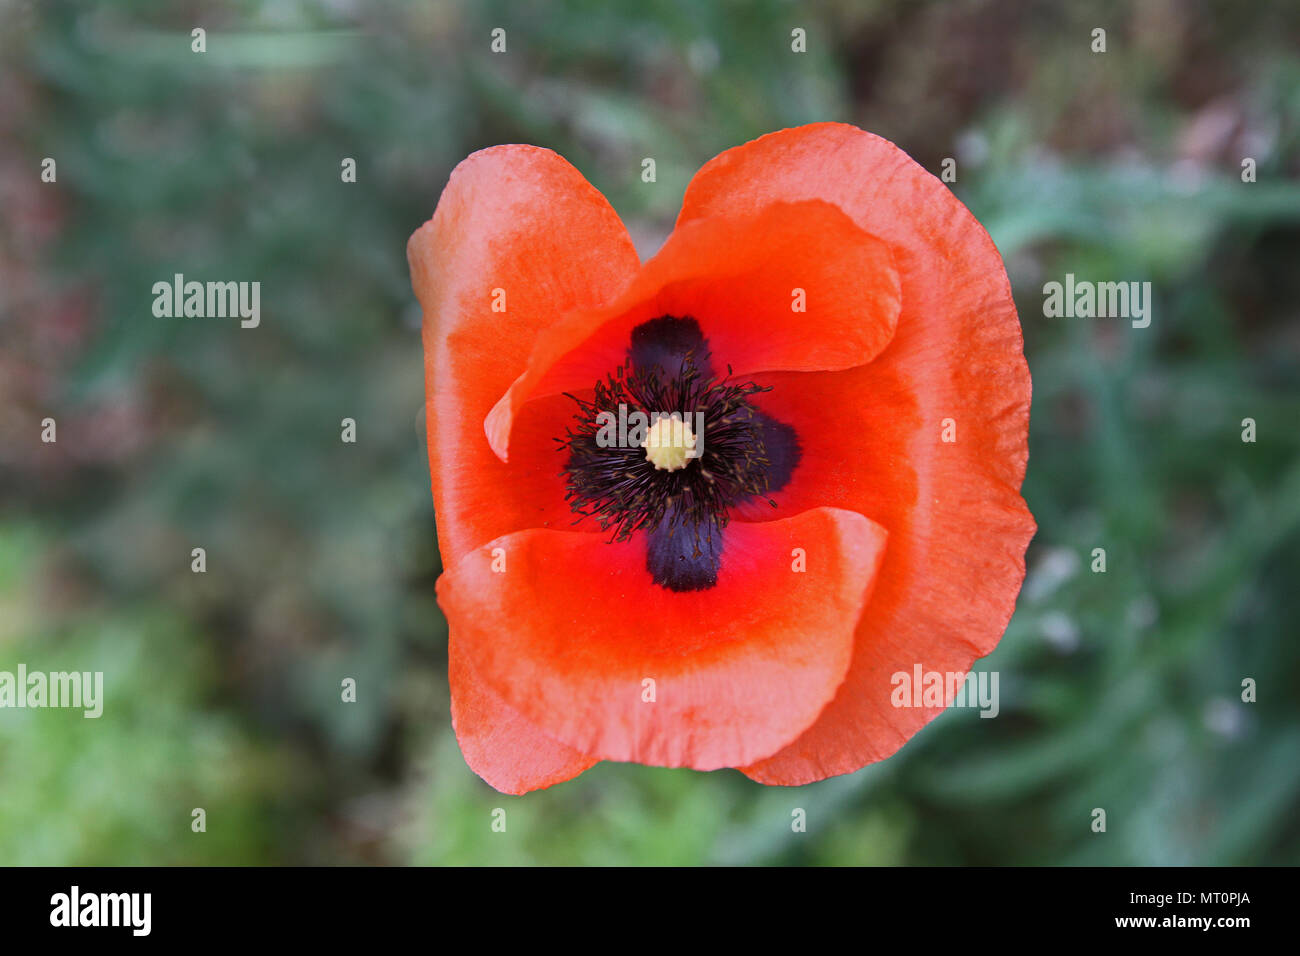 Poppy flower or papaver rhoeas remembering 1918, the Flanders Fields poem by John McCrae and 1944 Red Poppies on Monte Cassino song by Feliks Konarski - Stock Image